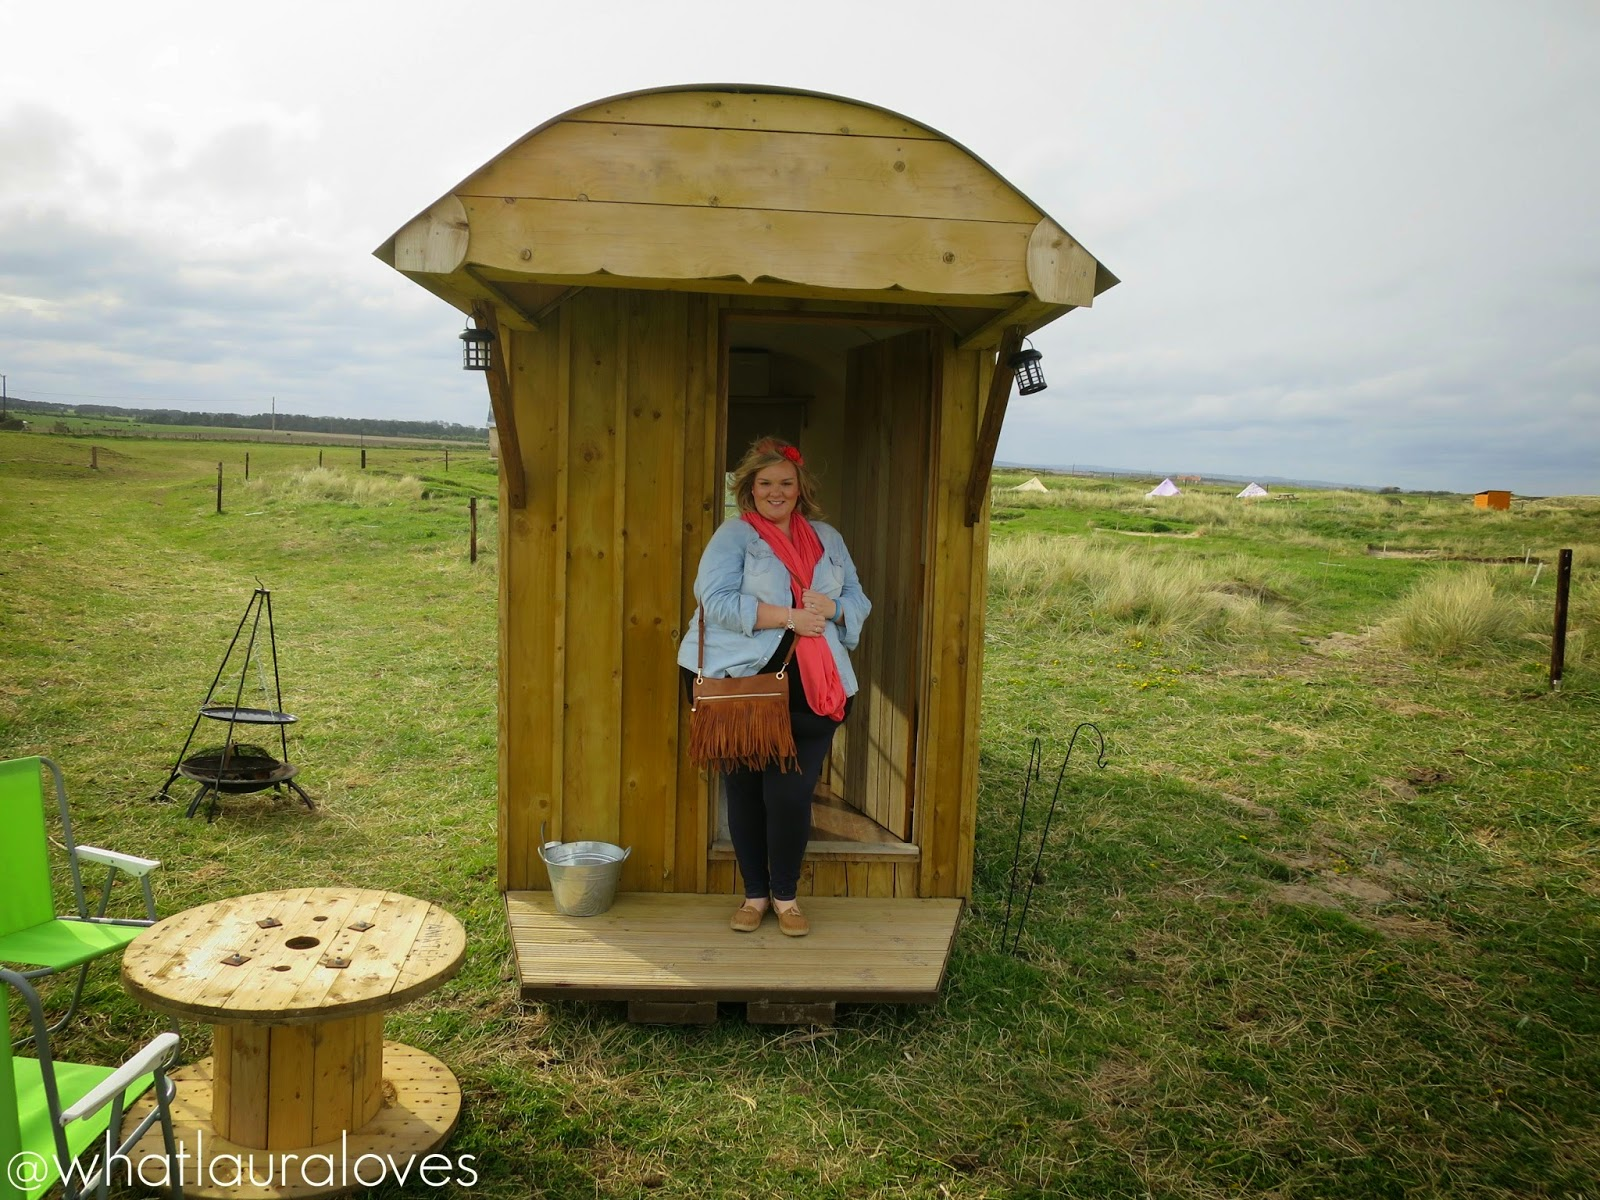 Glamping at the Bells of Hemscott Shepherds Hut Review